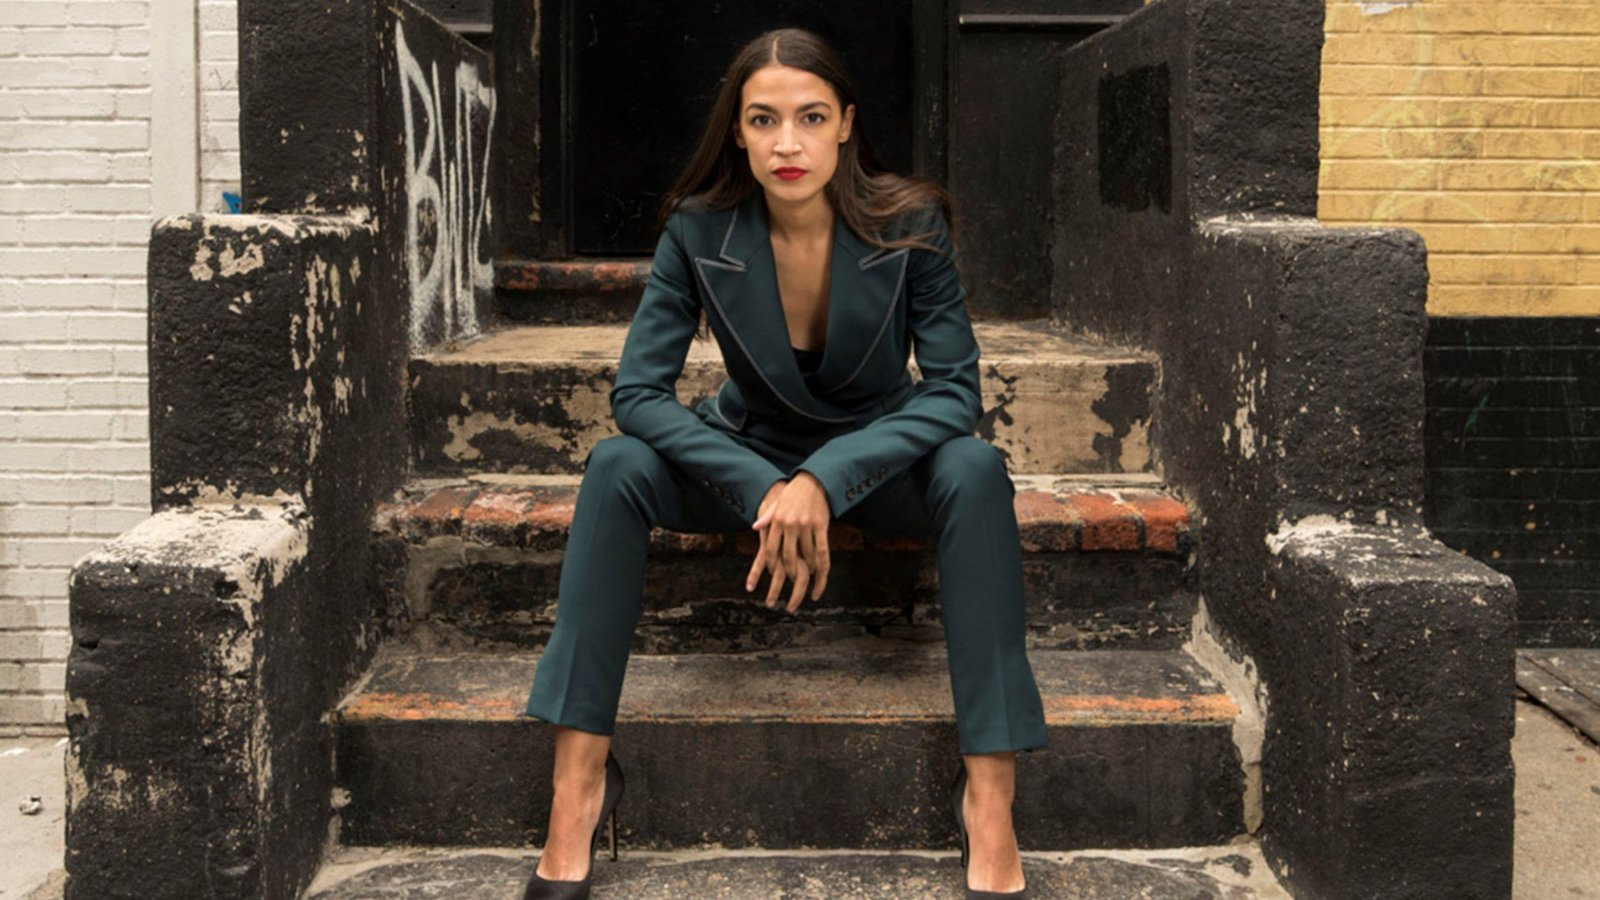 AOC is (Sort of) Right About Automation